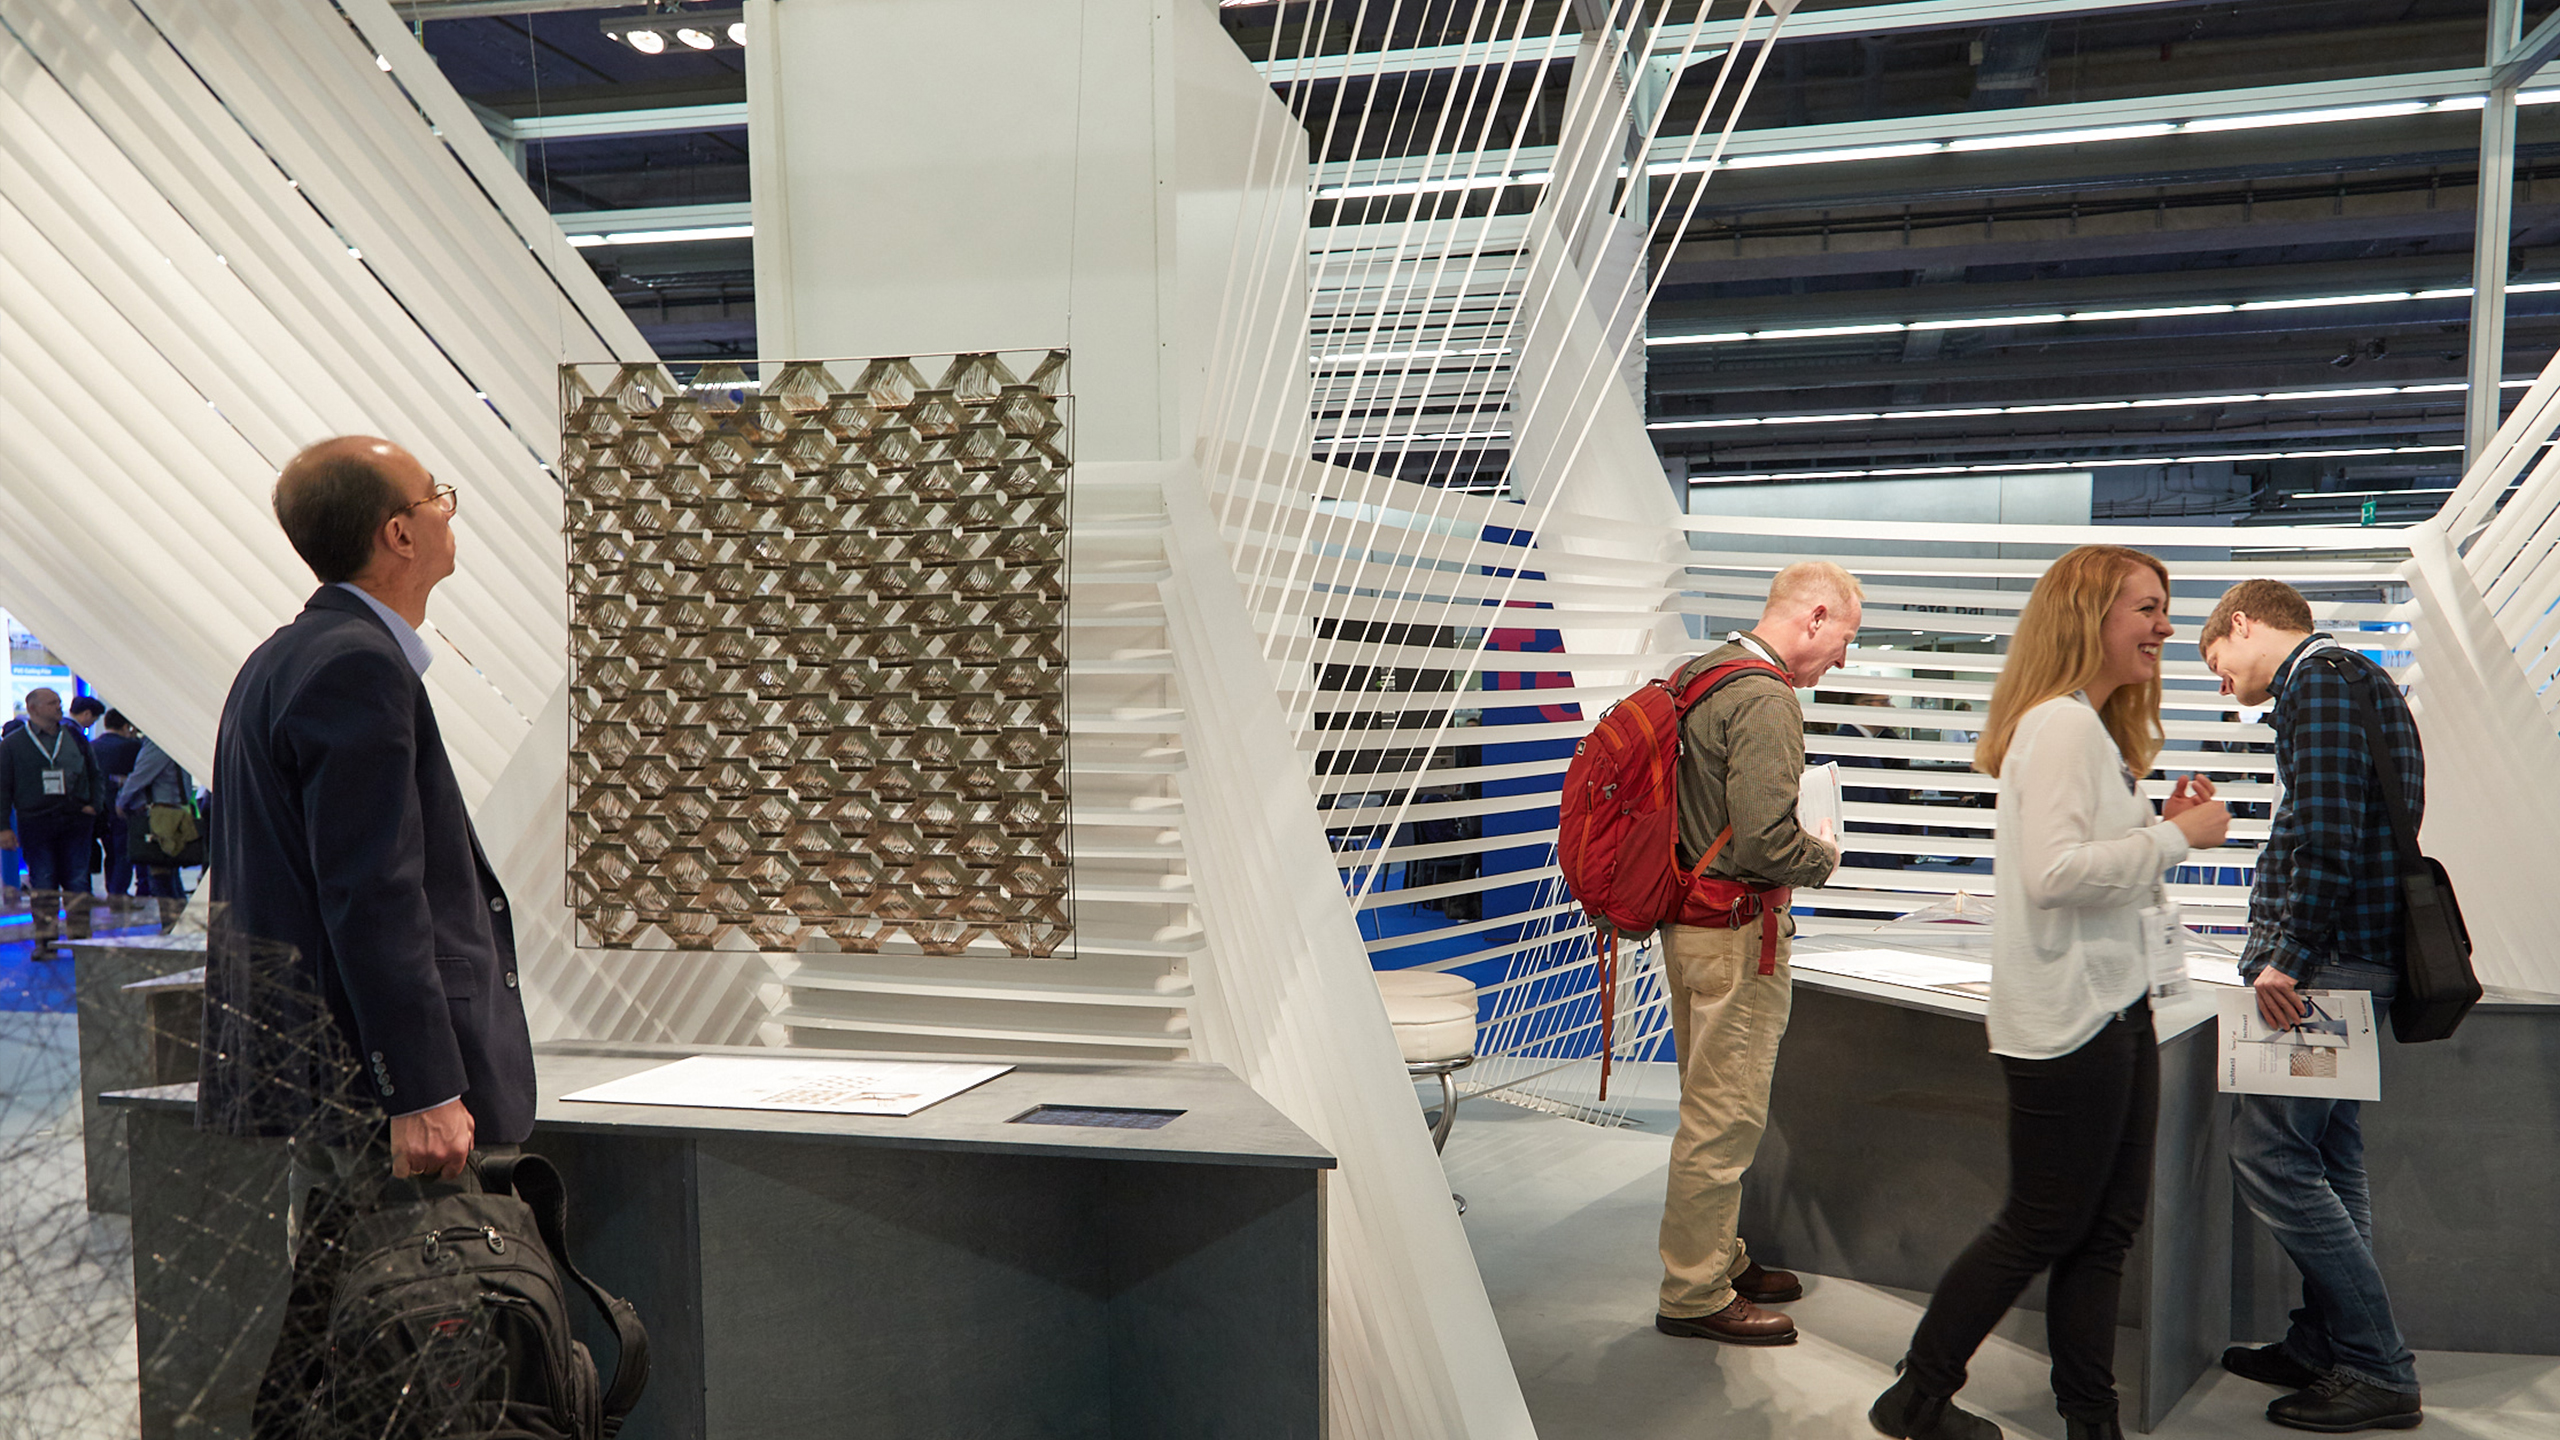 Competition for textile architecture. Techtextil will be giving students and young professionals prizes for their ideas